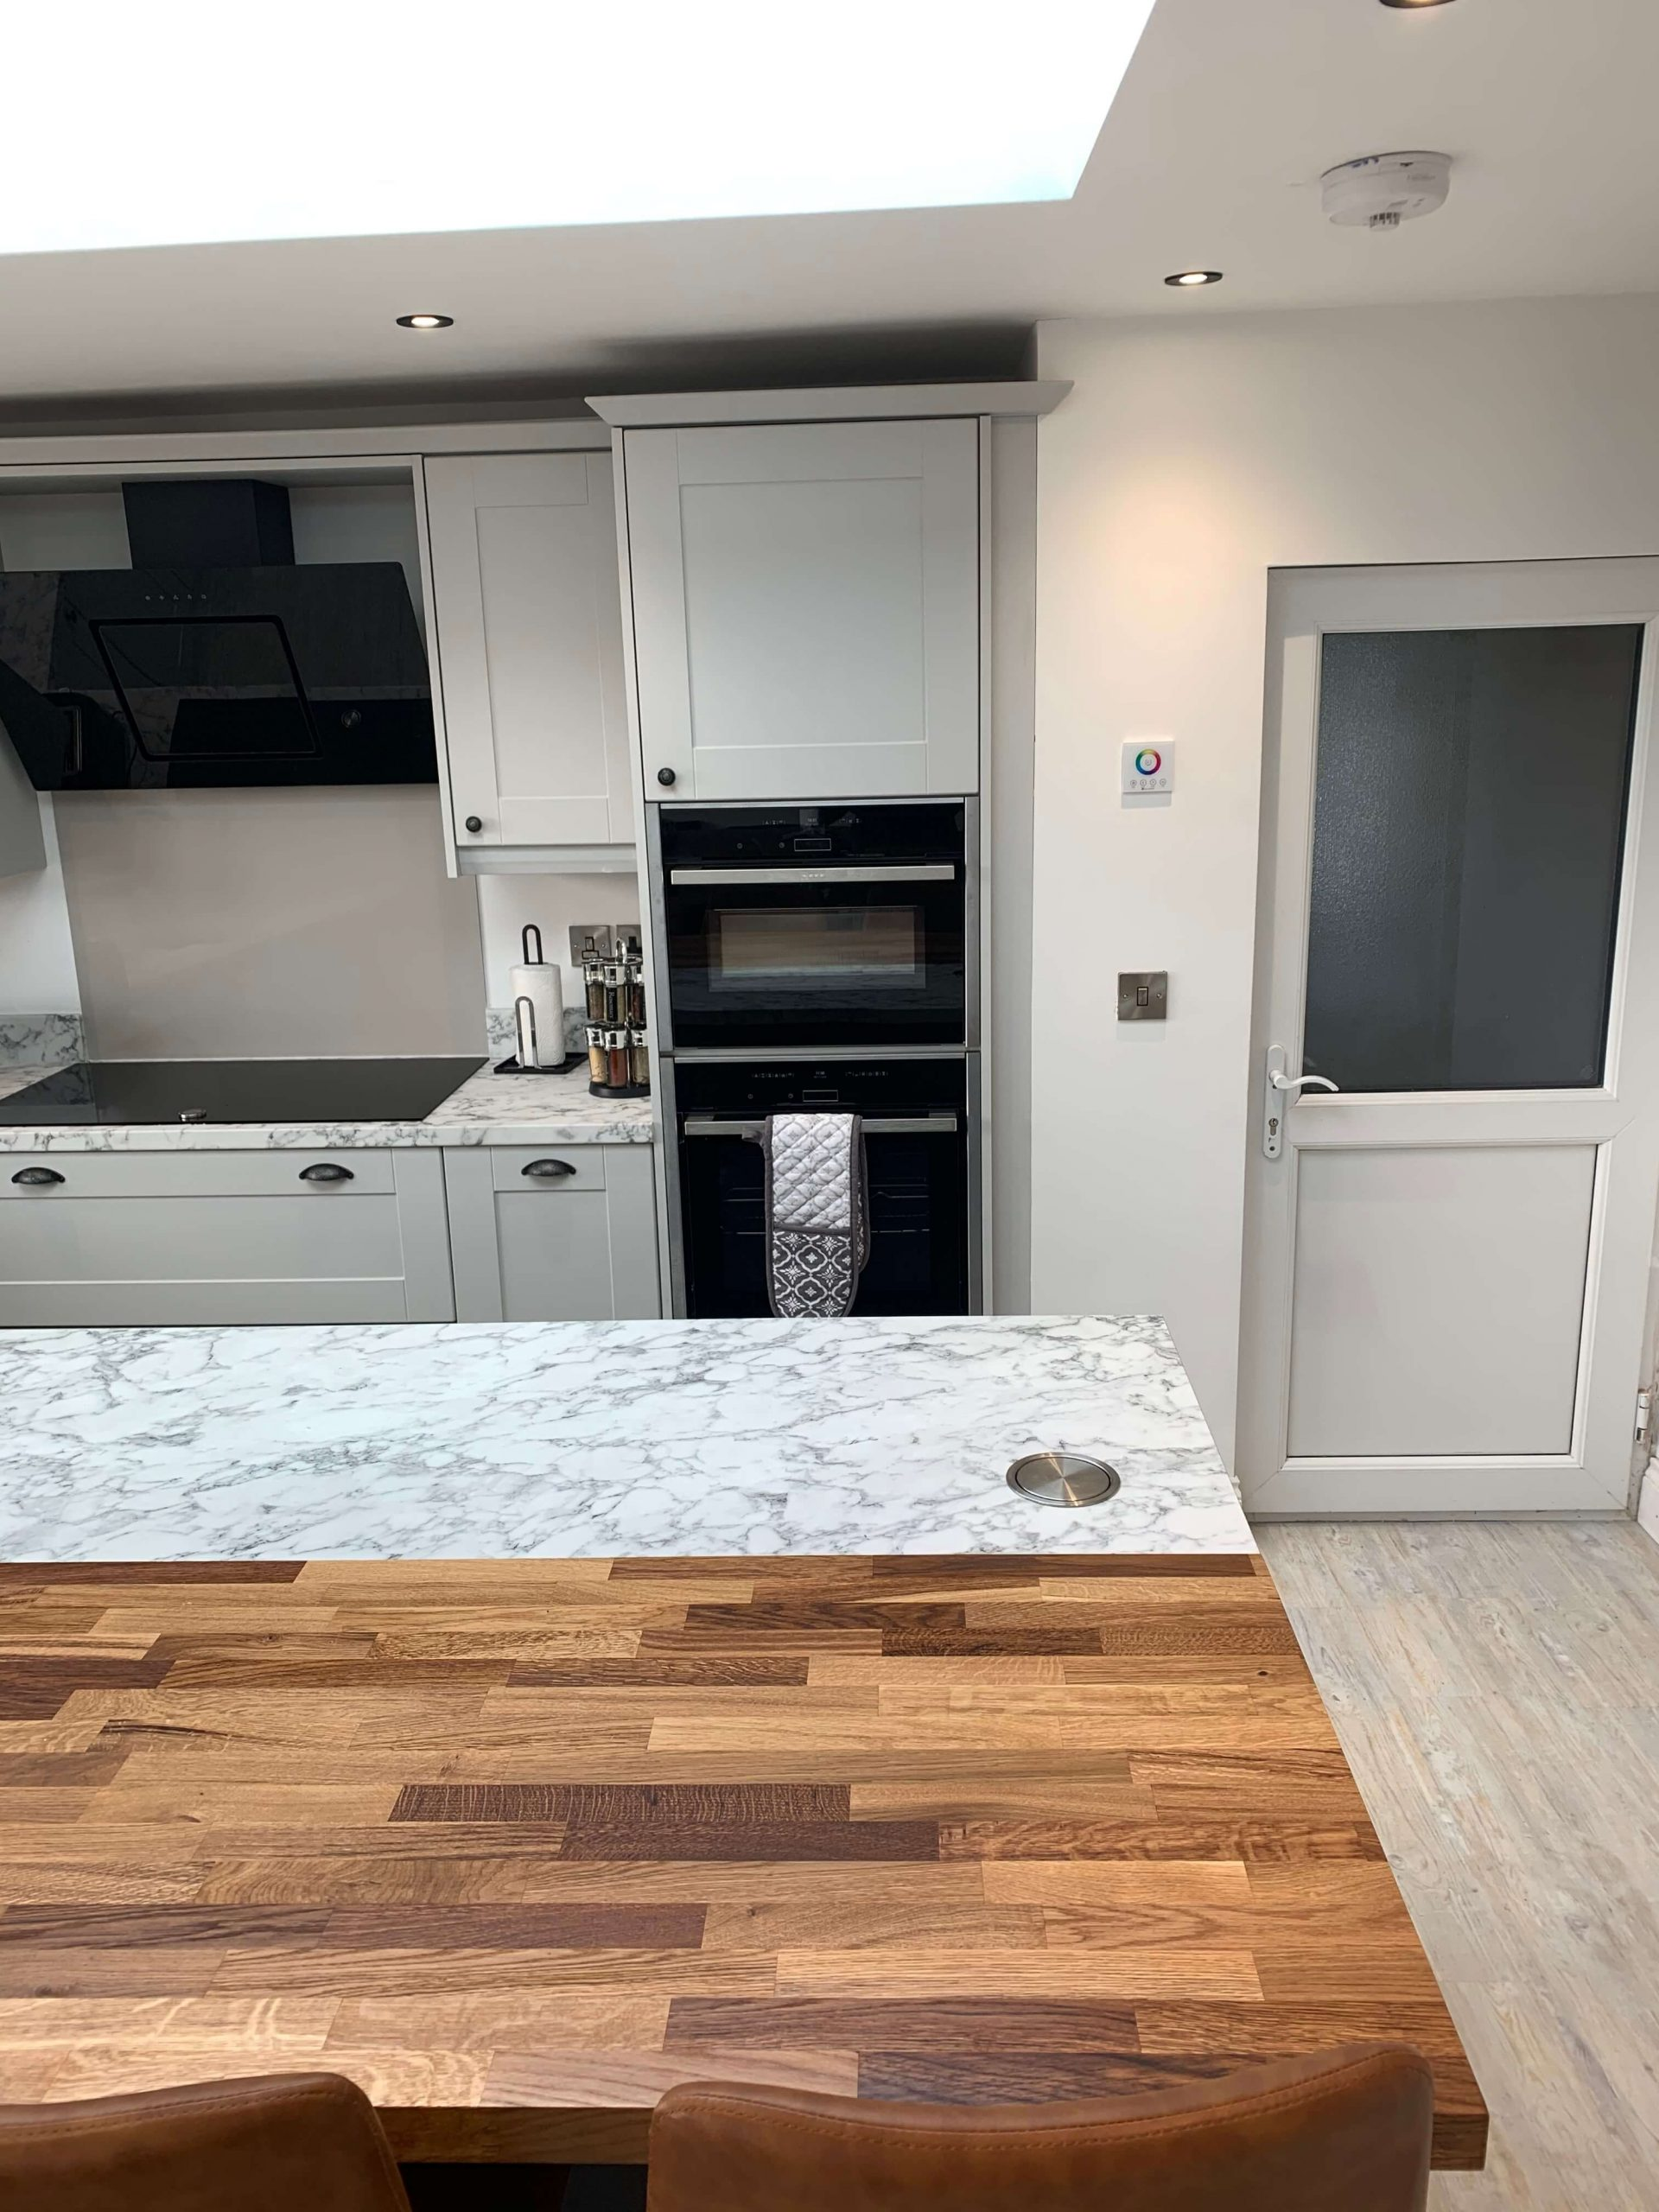 Oven and Microwave Housing